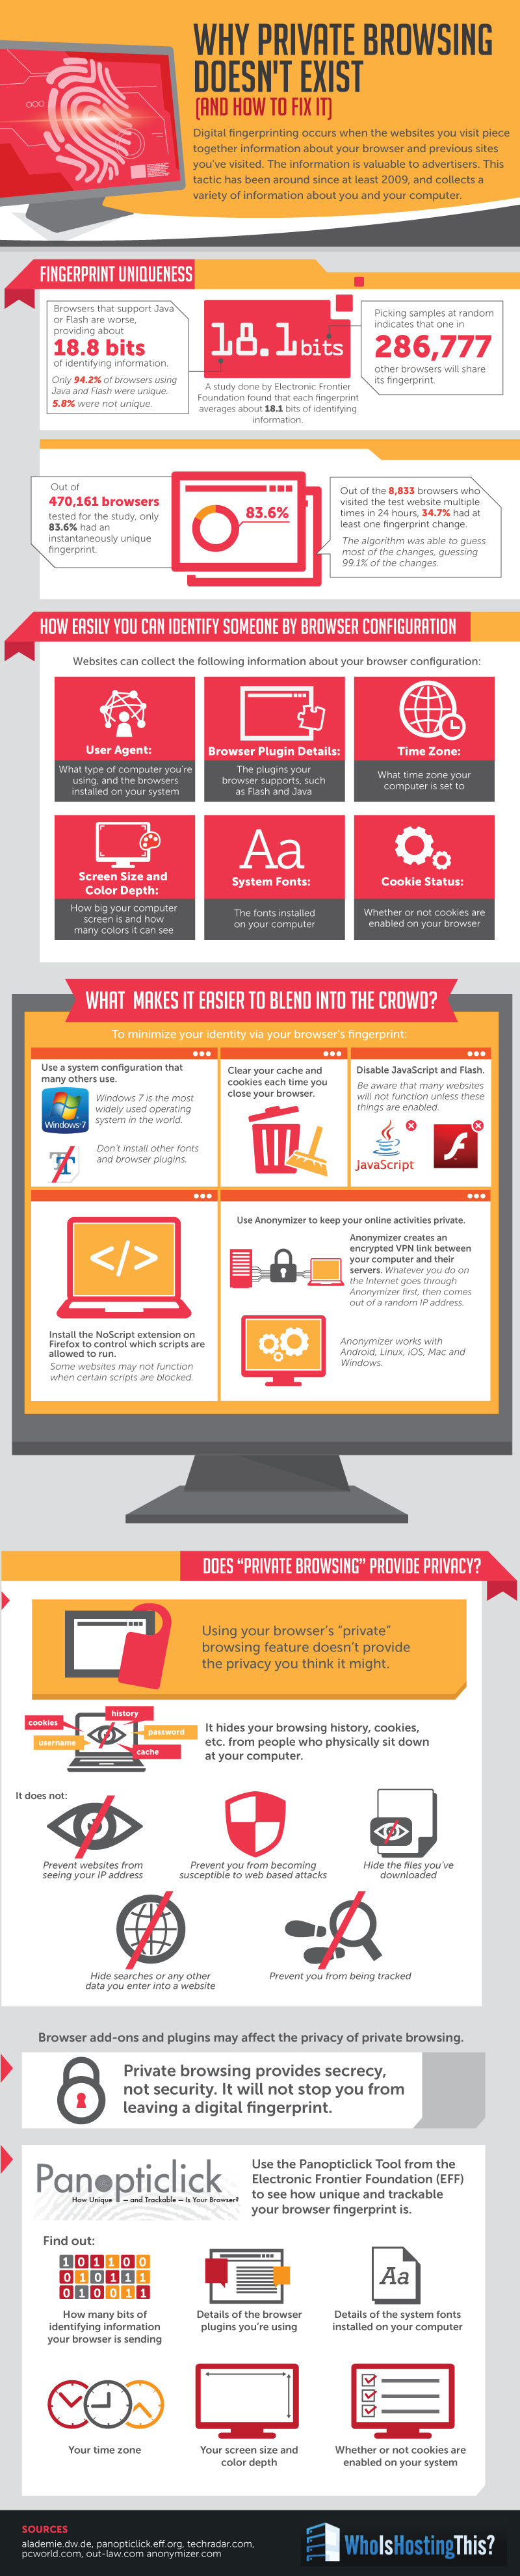 Infographic: Why Private Browsing Doesn't Exist #infographic